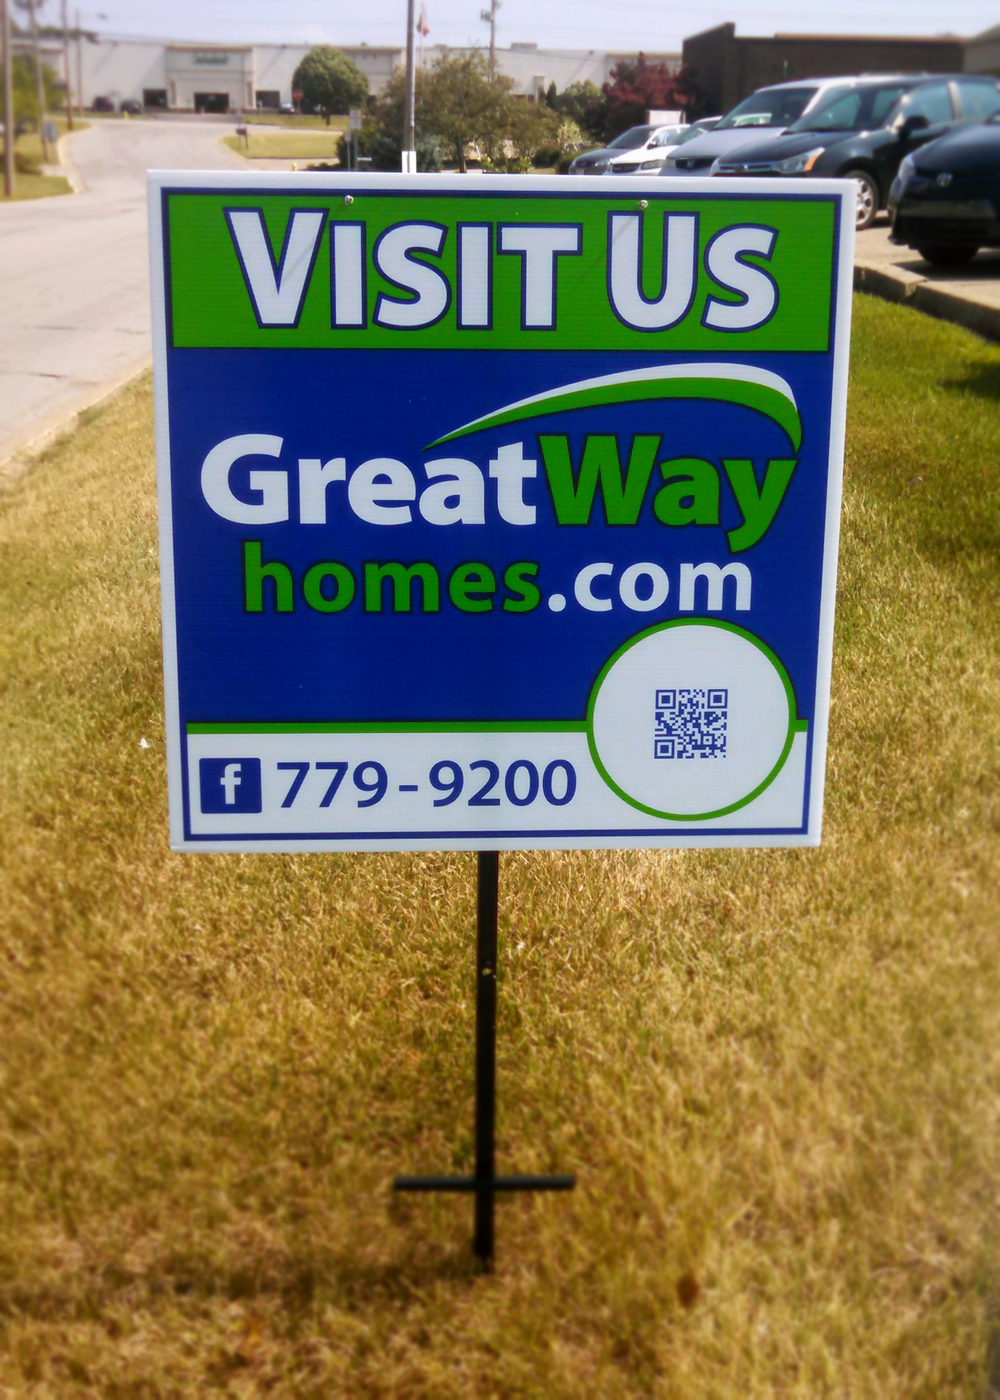 2015.06.12 GreatWay Homes Directional.jpg